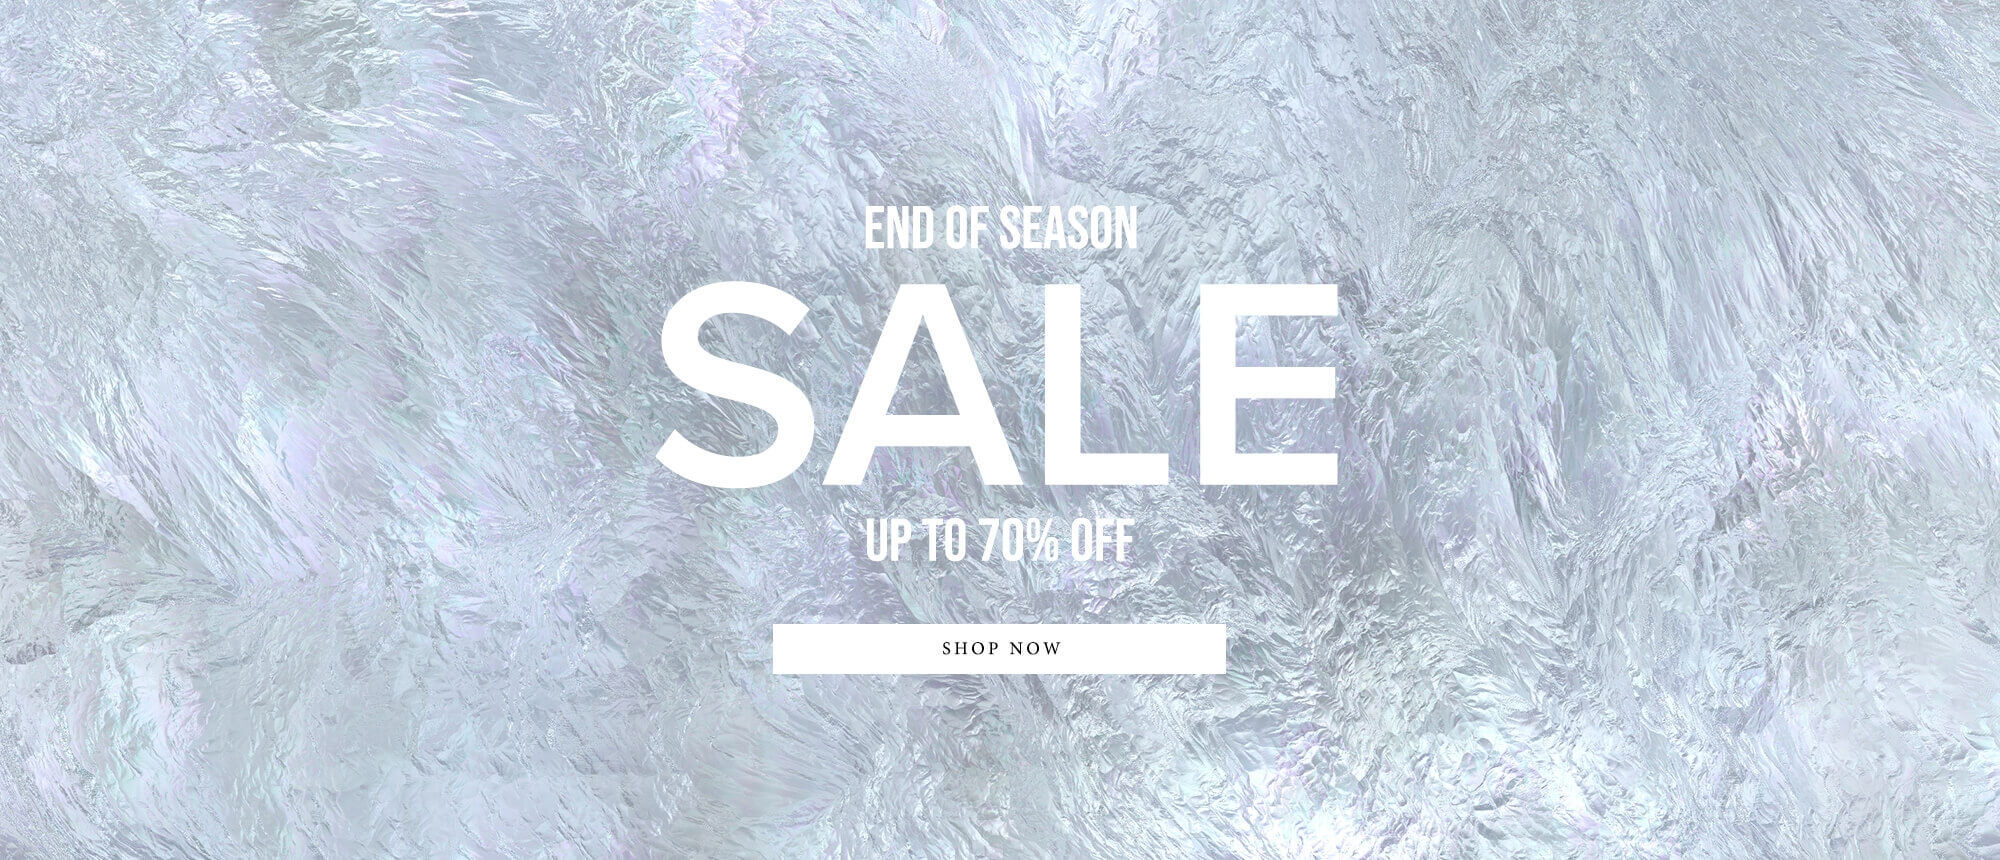 Little Mistress: End of Season Sale up to 70% off women's clothing